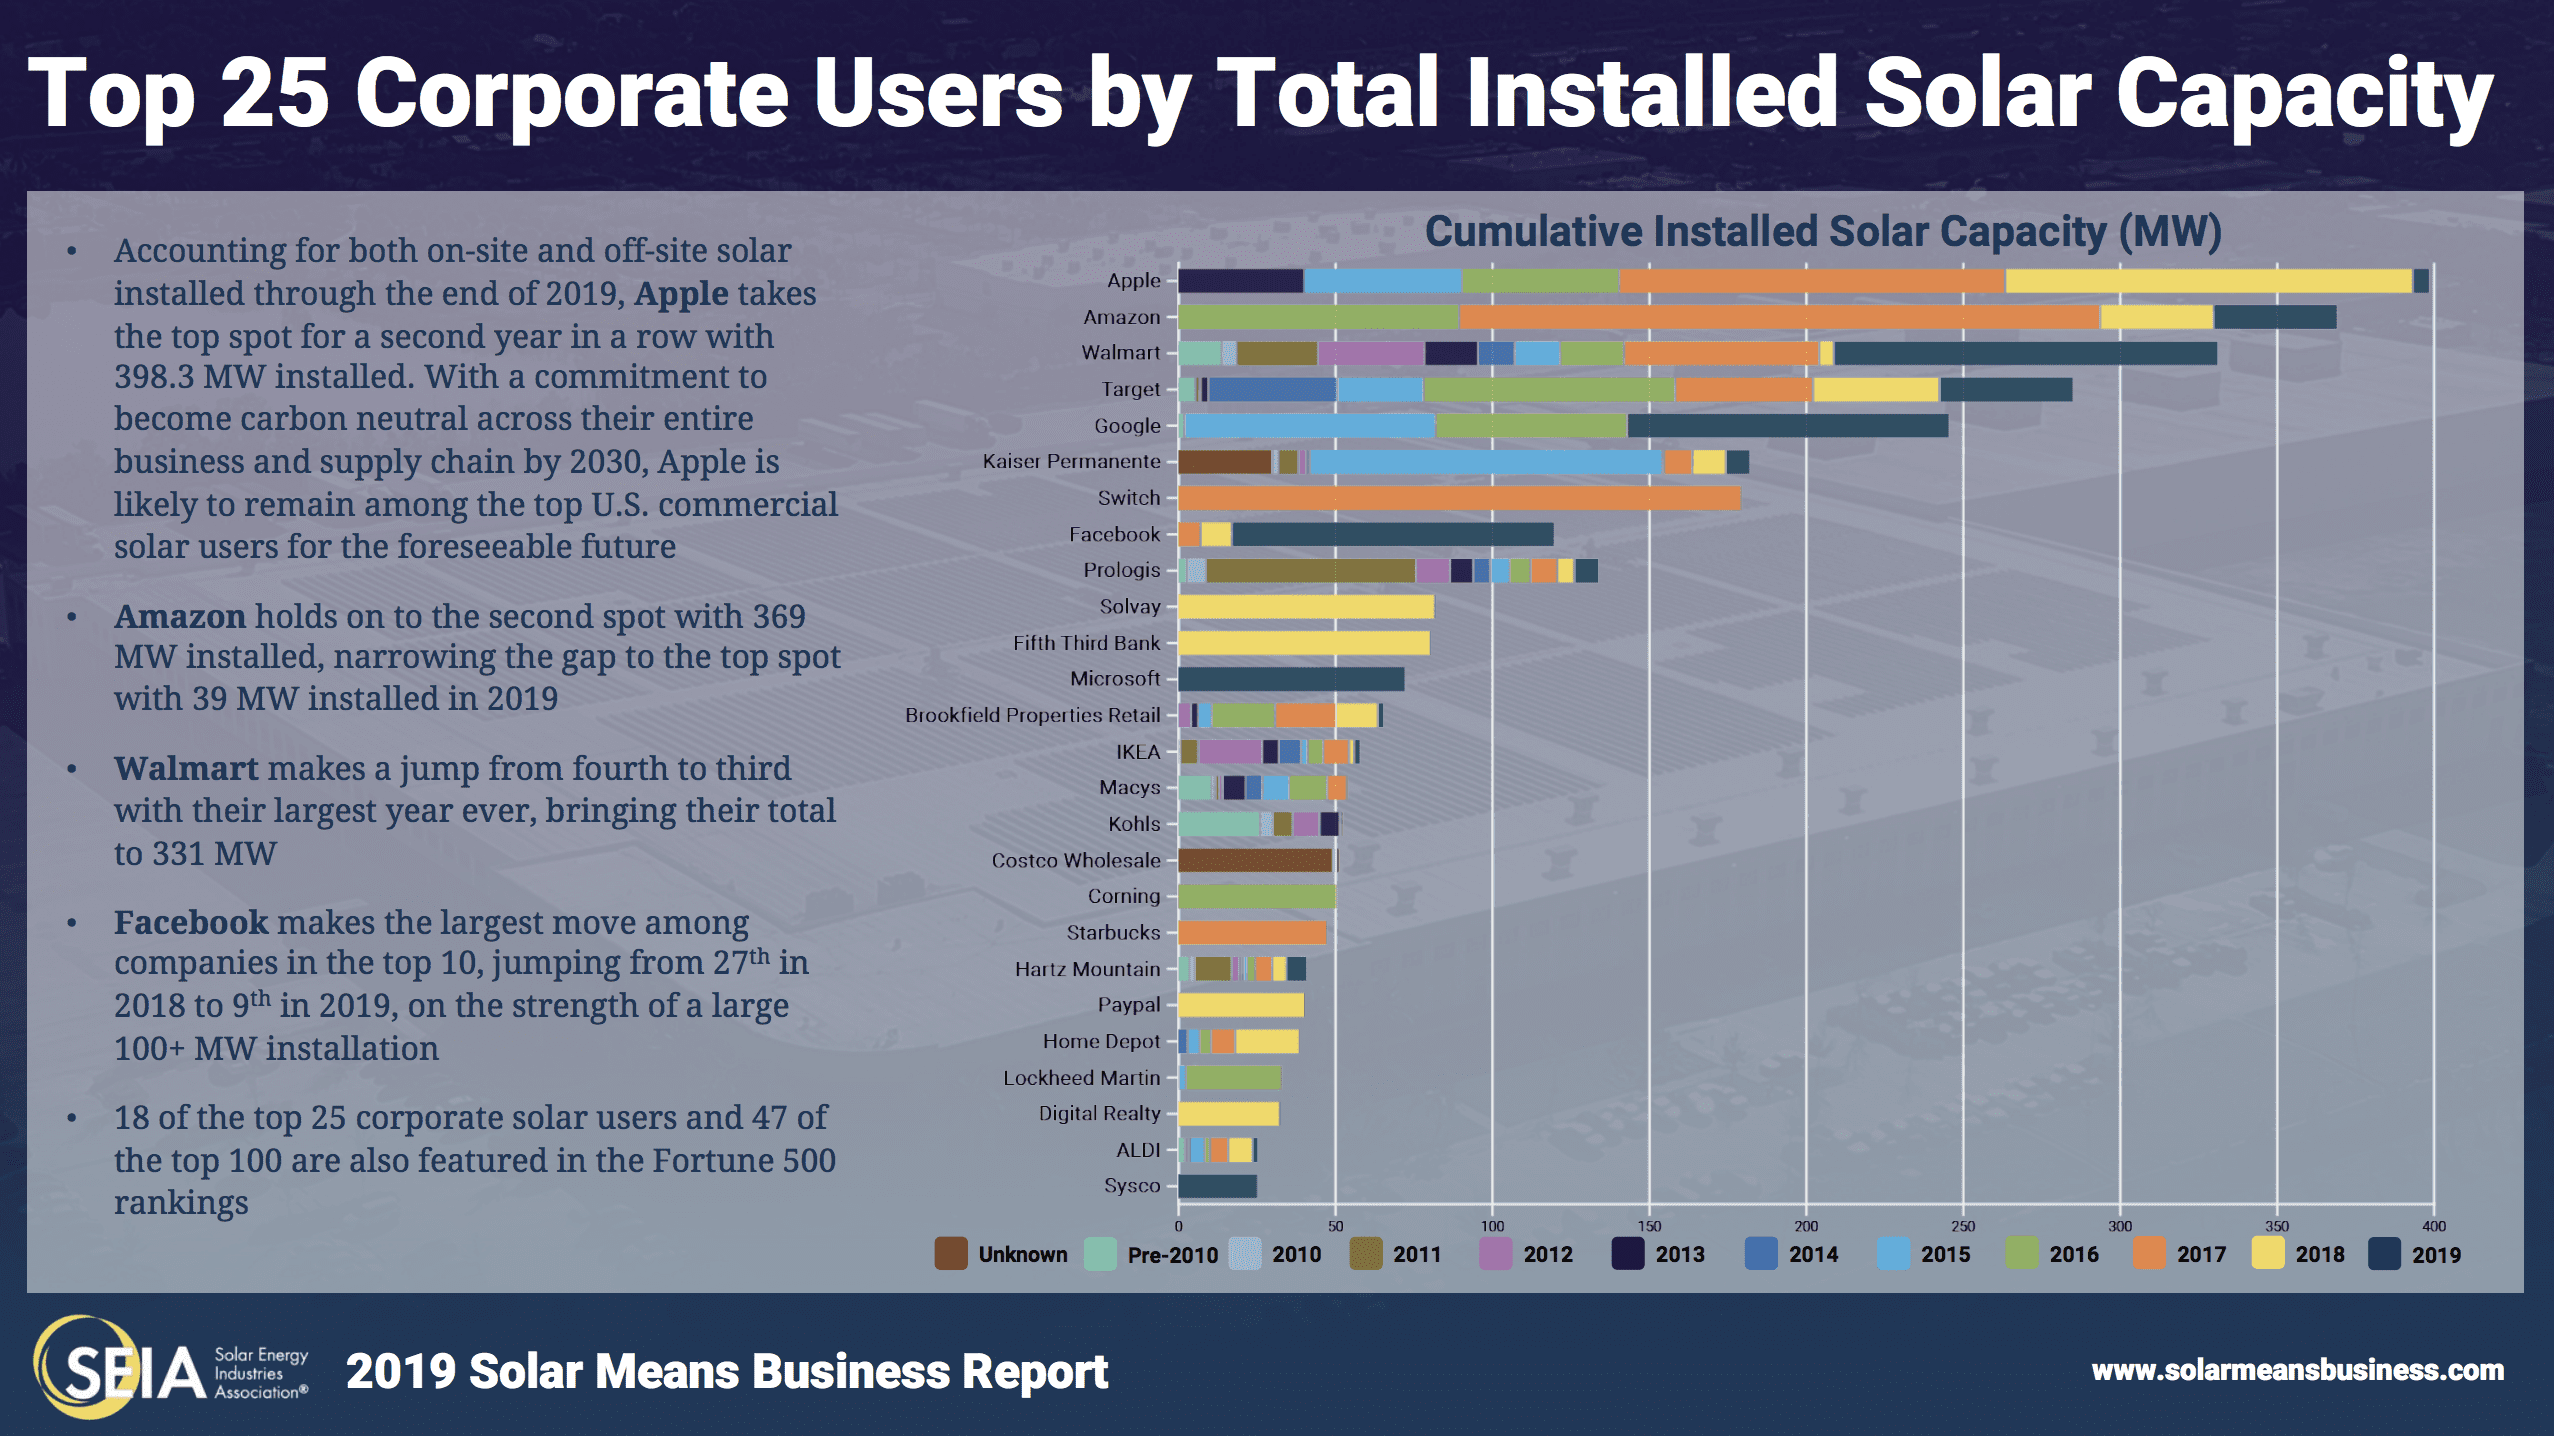 SEIA Solar Means Business Corporate Users by Total Installations